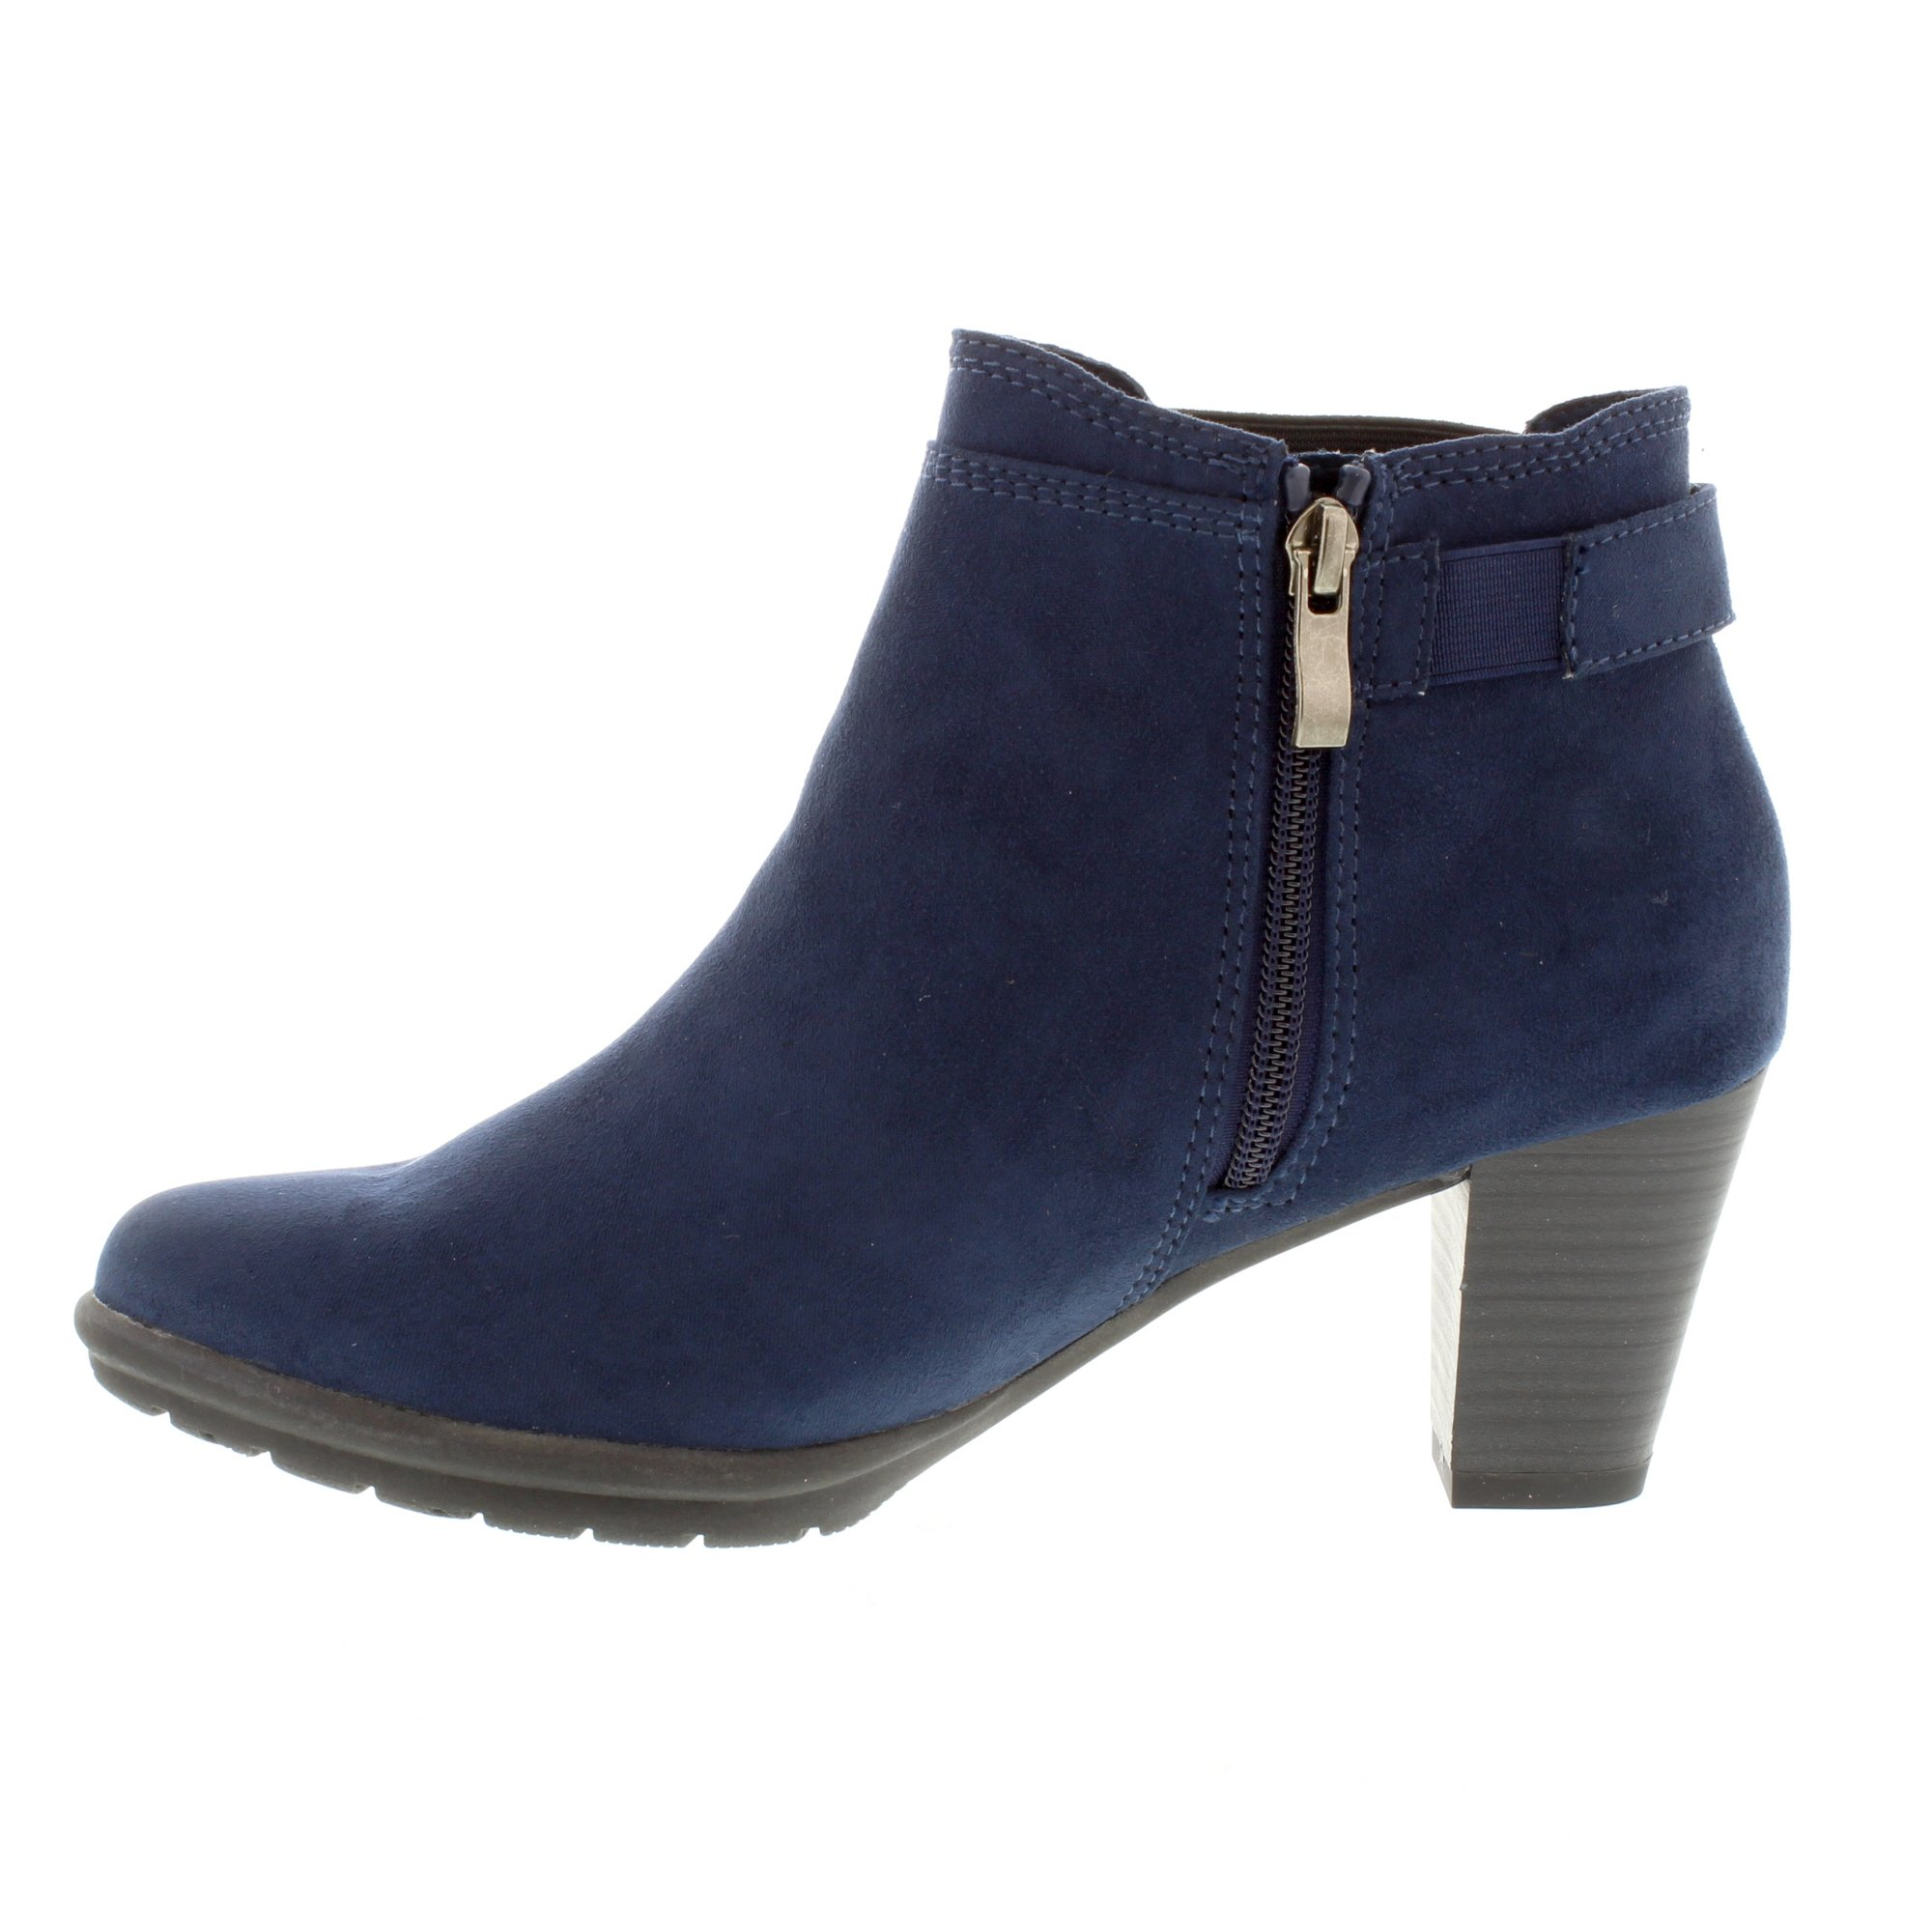 Navy Ankle Boots gfU1V6u8